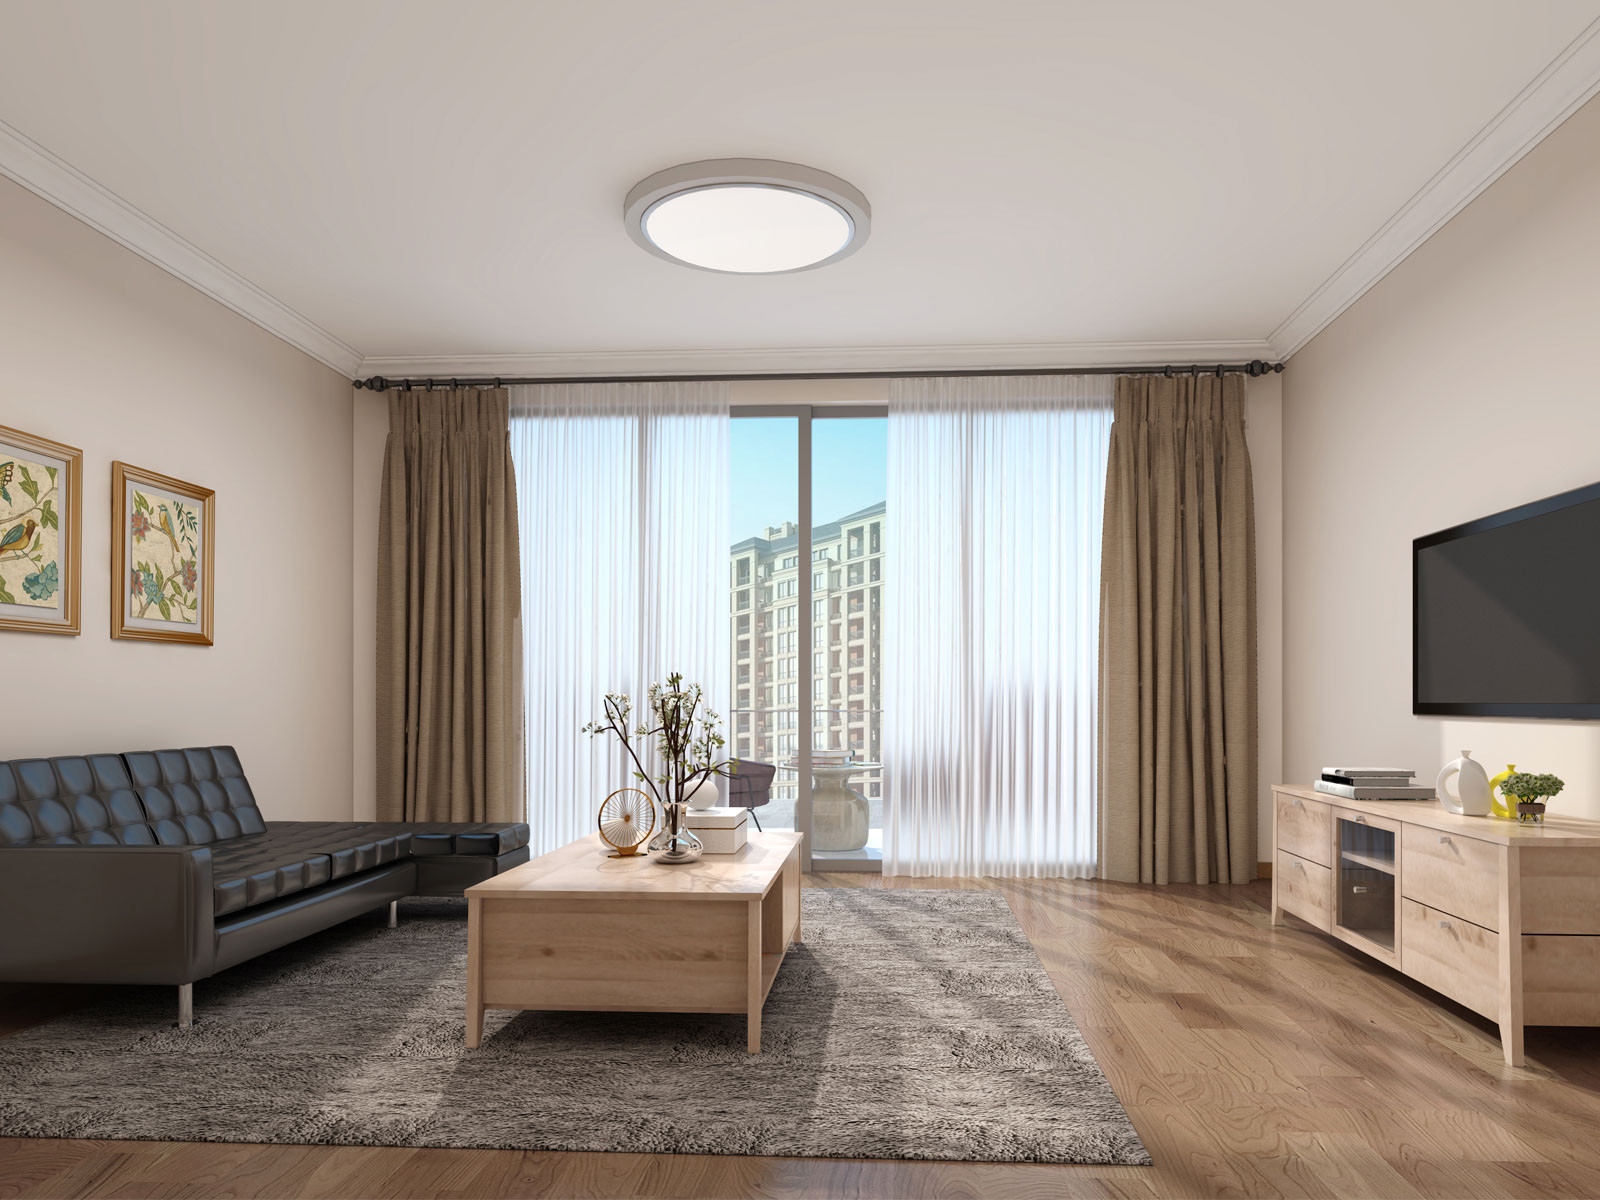 Best ideas about Ceiling Lights For Living Room . Save or Pin Living Room Ceiling Lights Upshine Lighting Now.